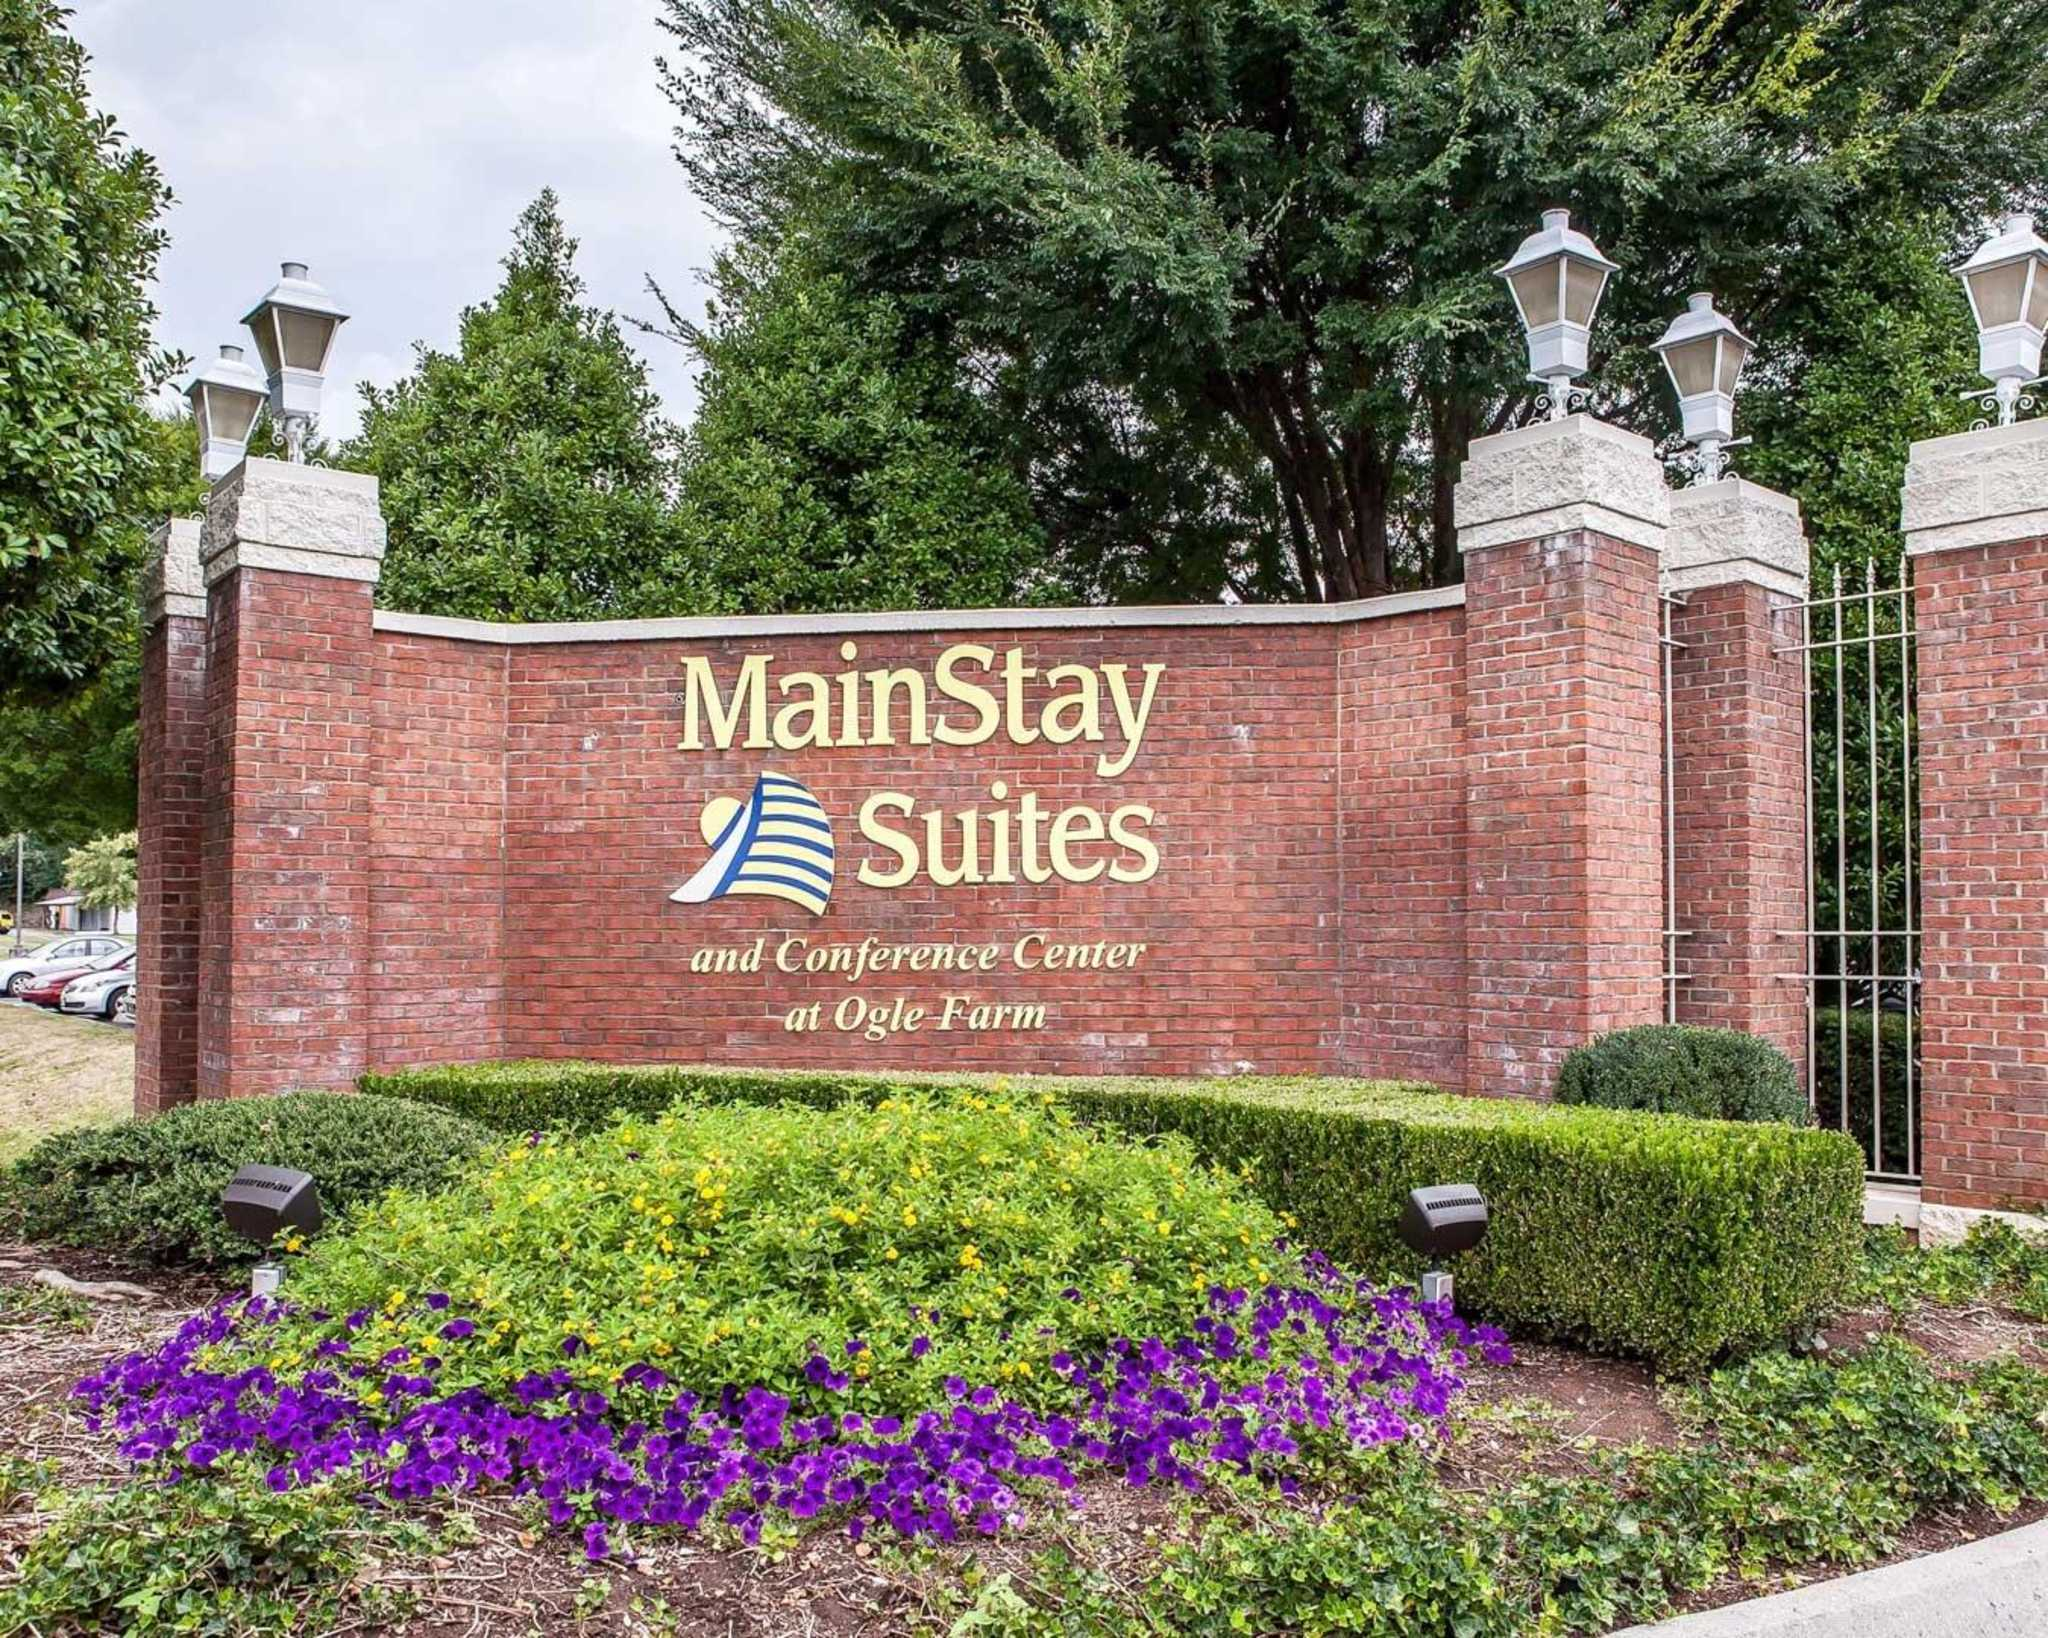 MainStay Suites Conference Center image 1